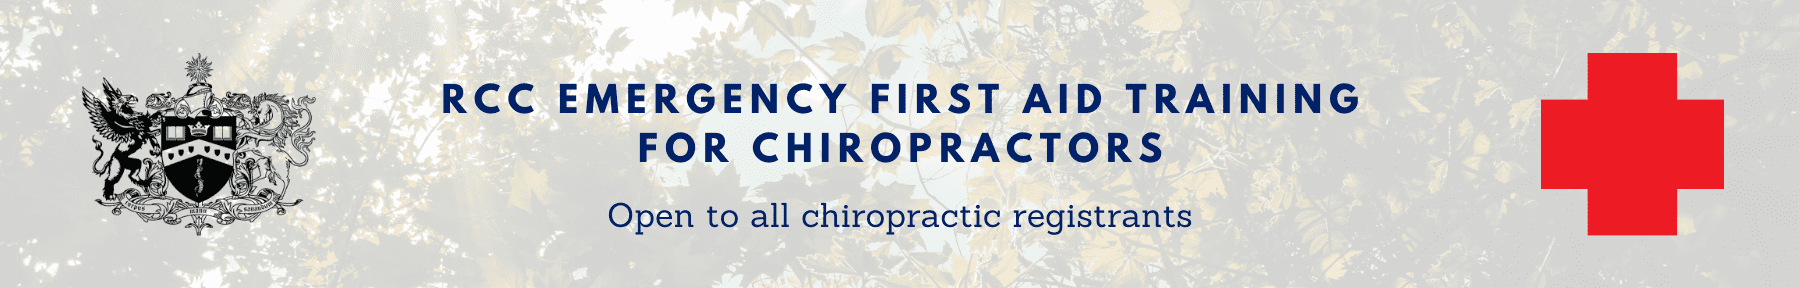 first aid training, emergency first aid, chiropractic first aid, uk, training